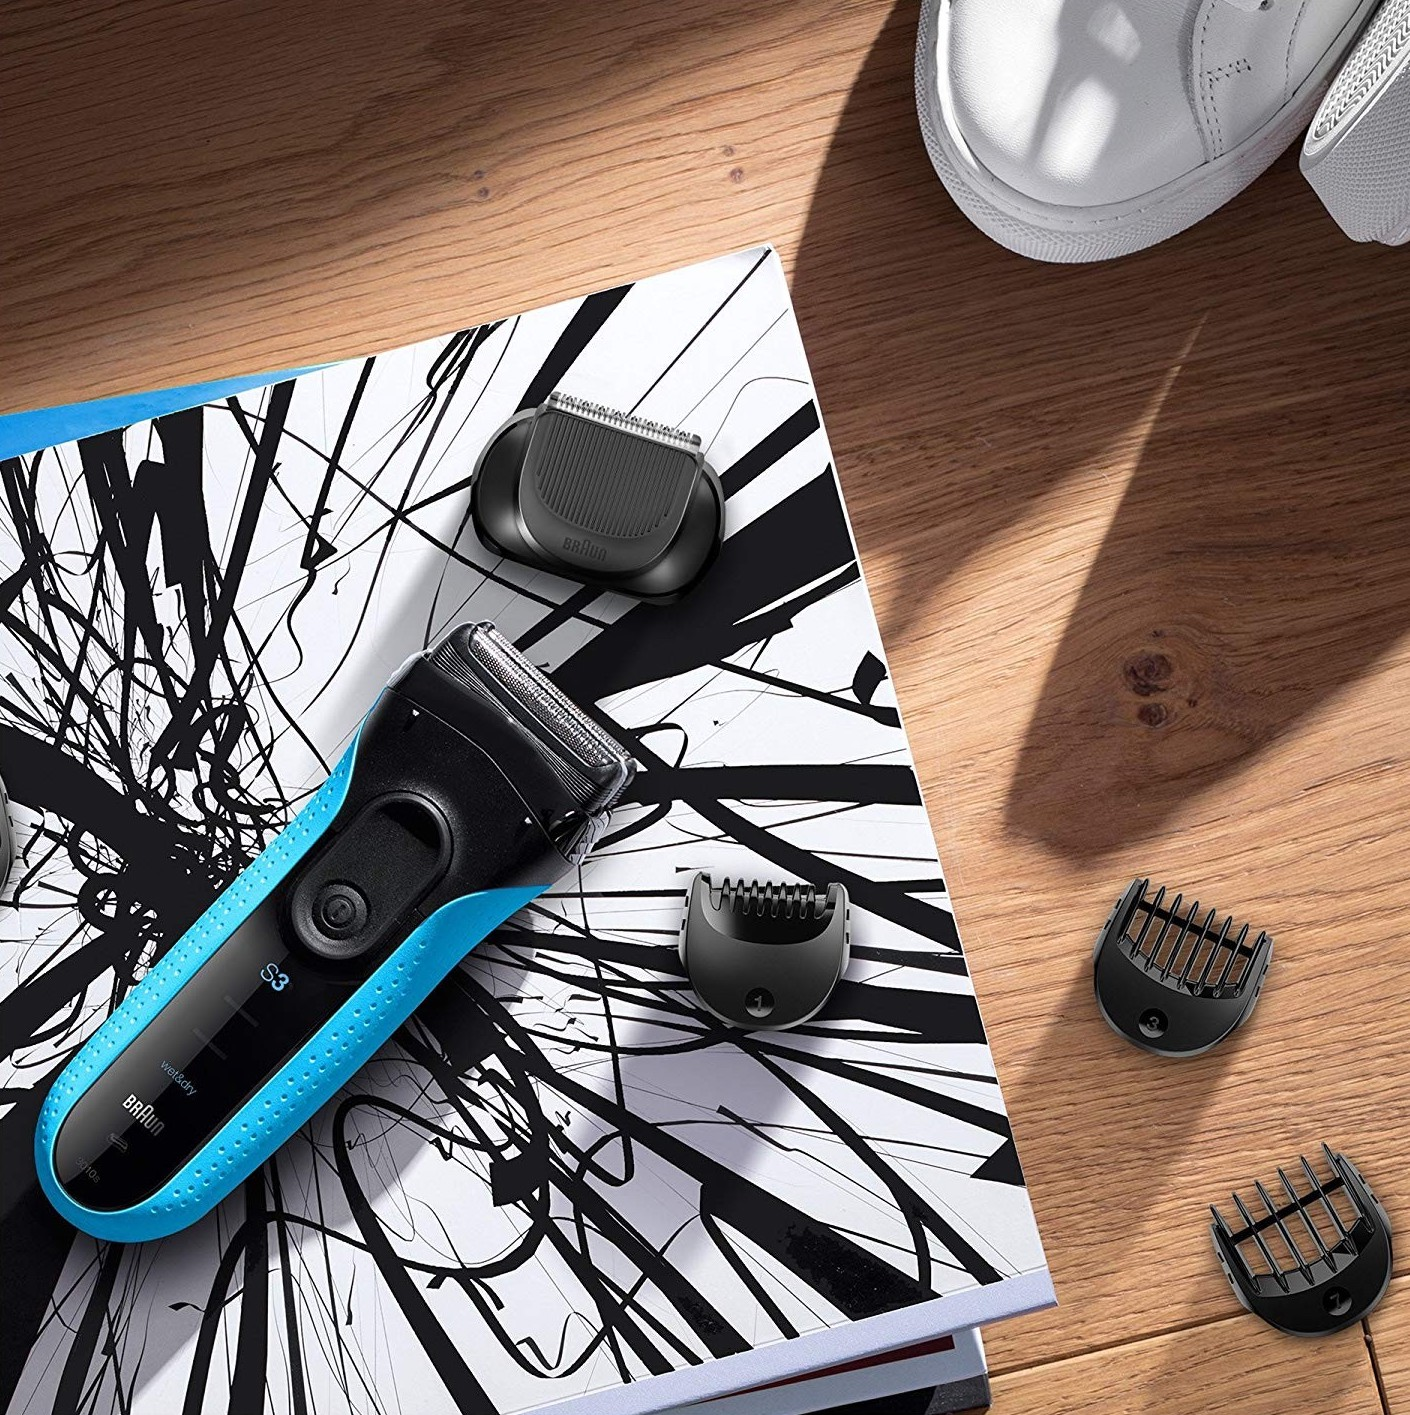 braun rechargeable shaver